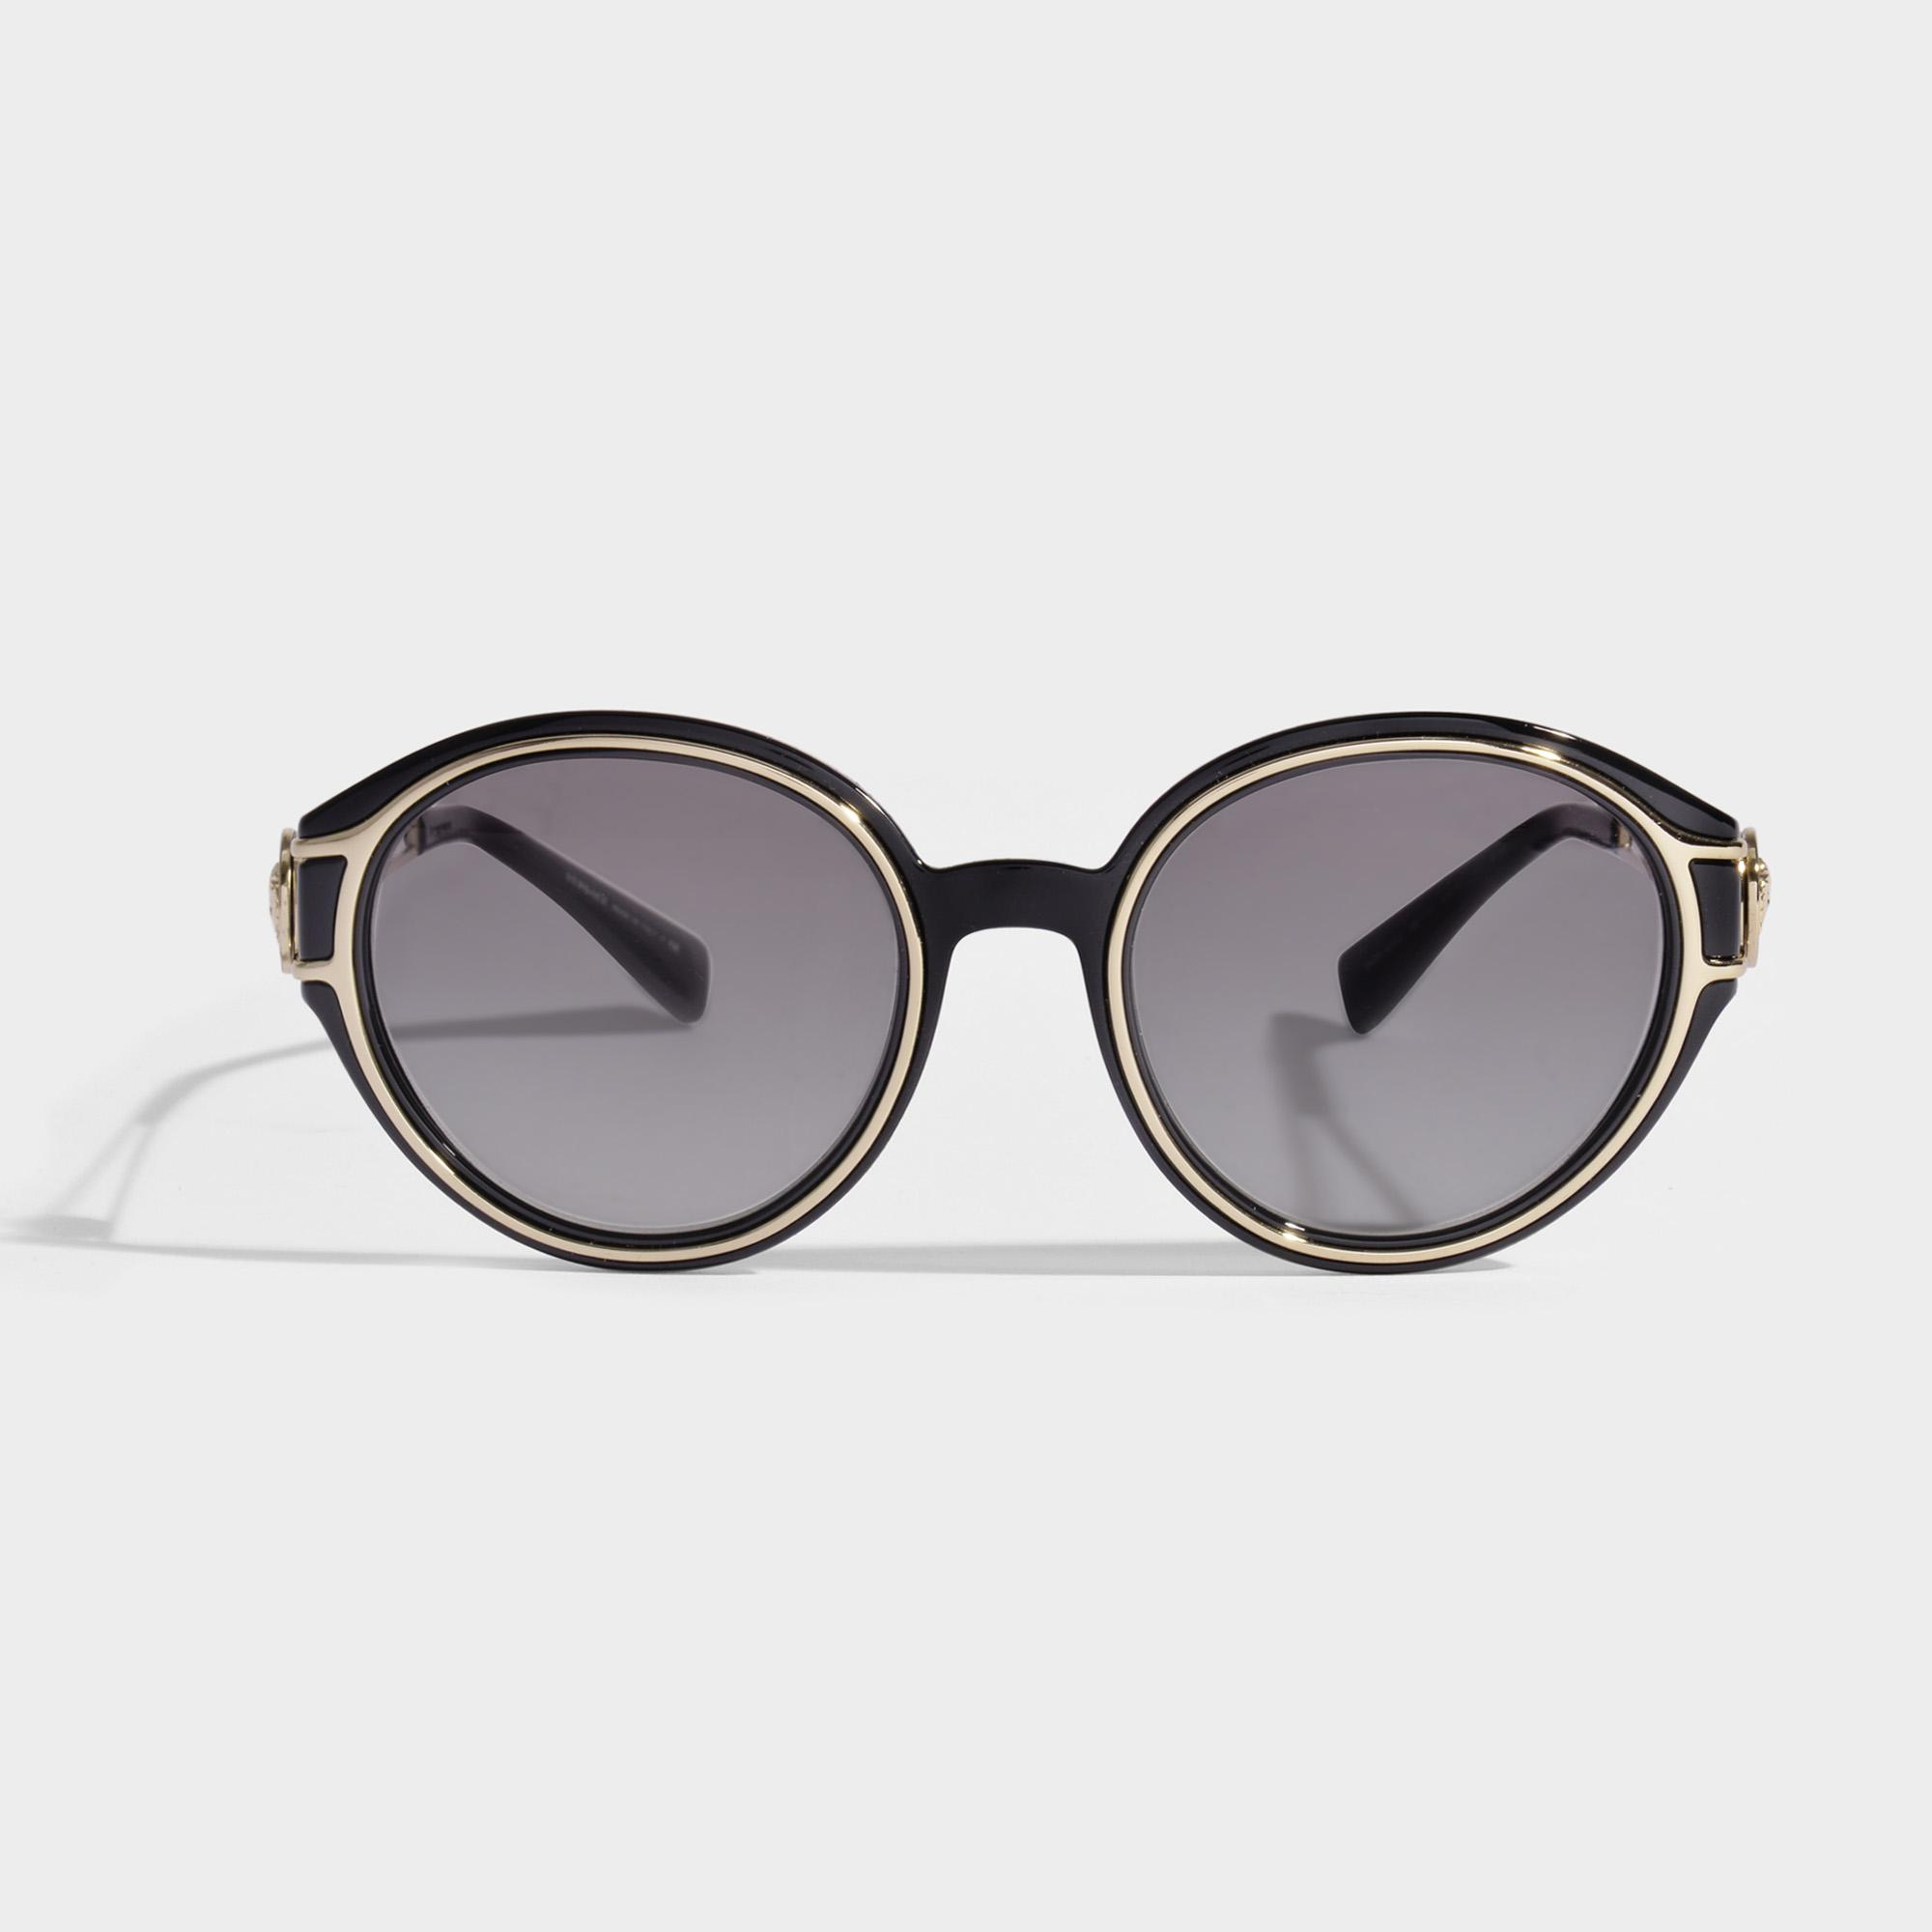 f02a837d1dcb Versace V-strong Sunglasses In Black Acetate in Brown - Lyst